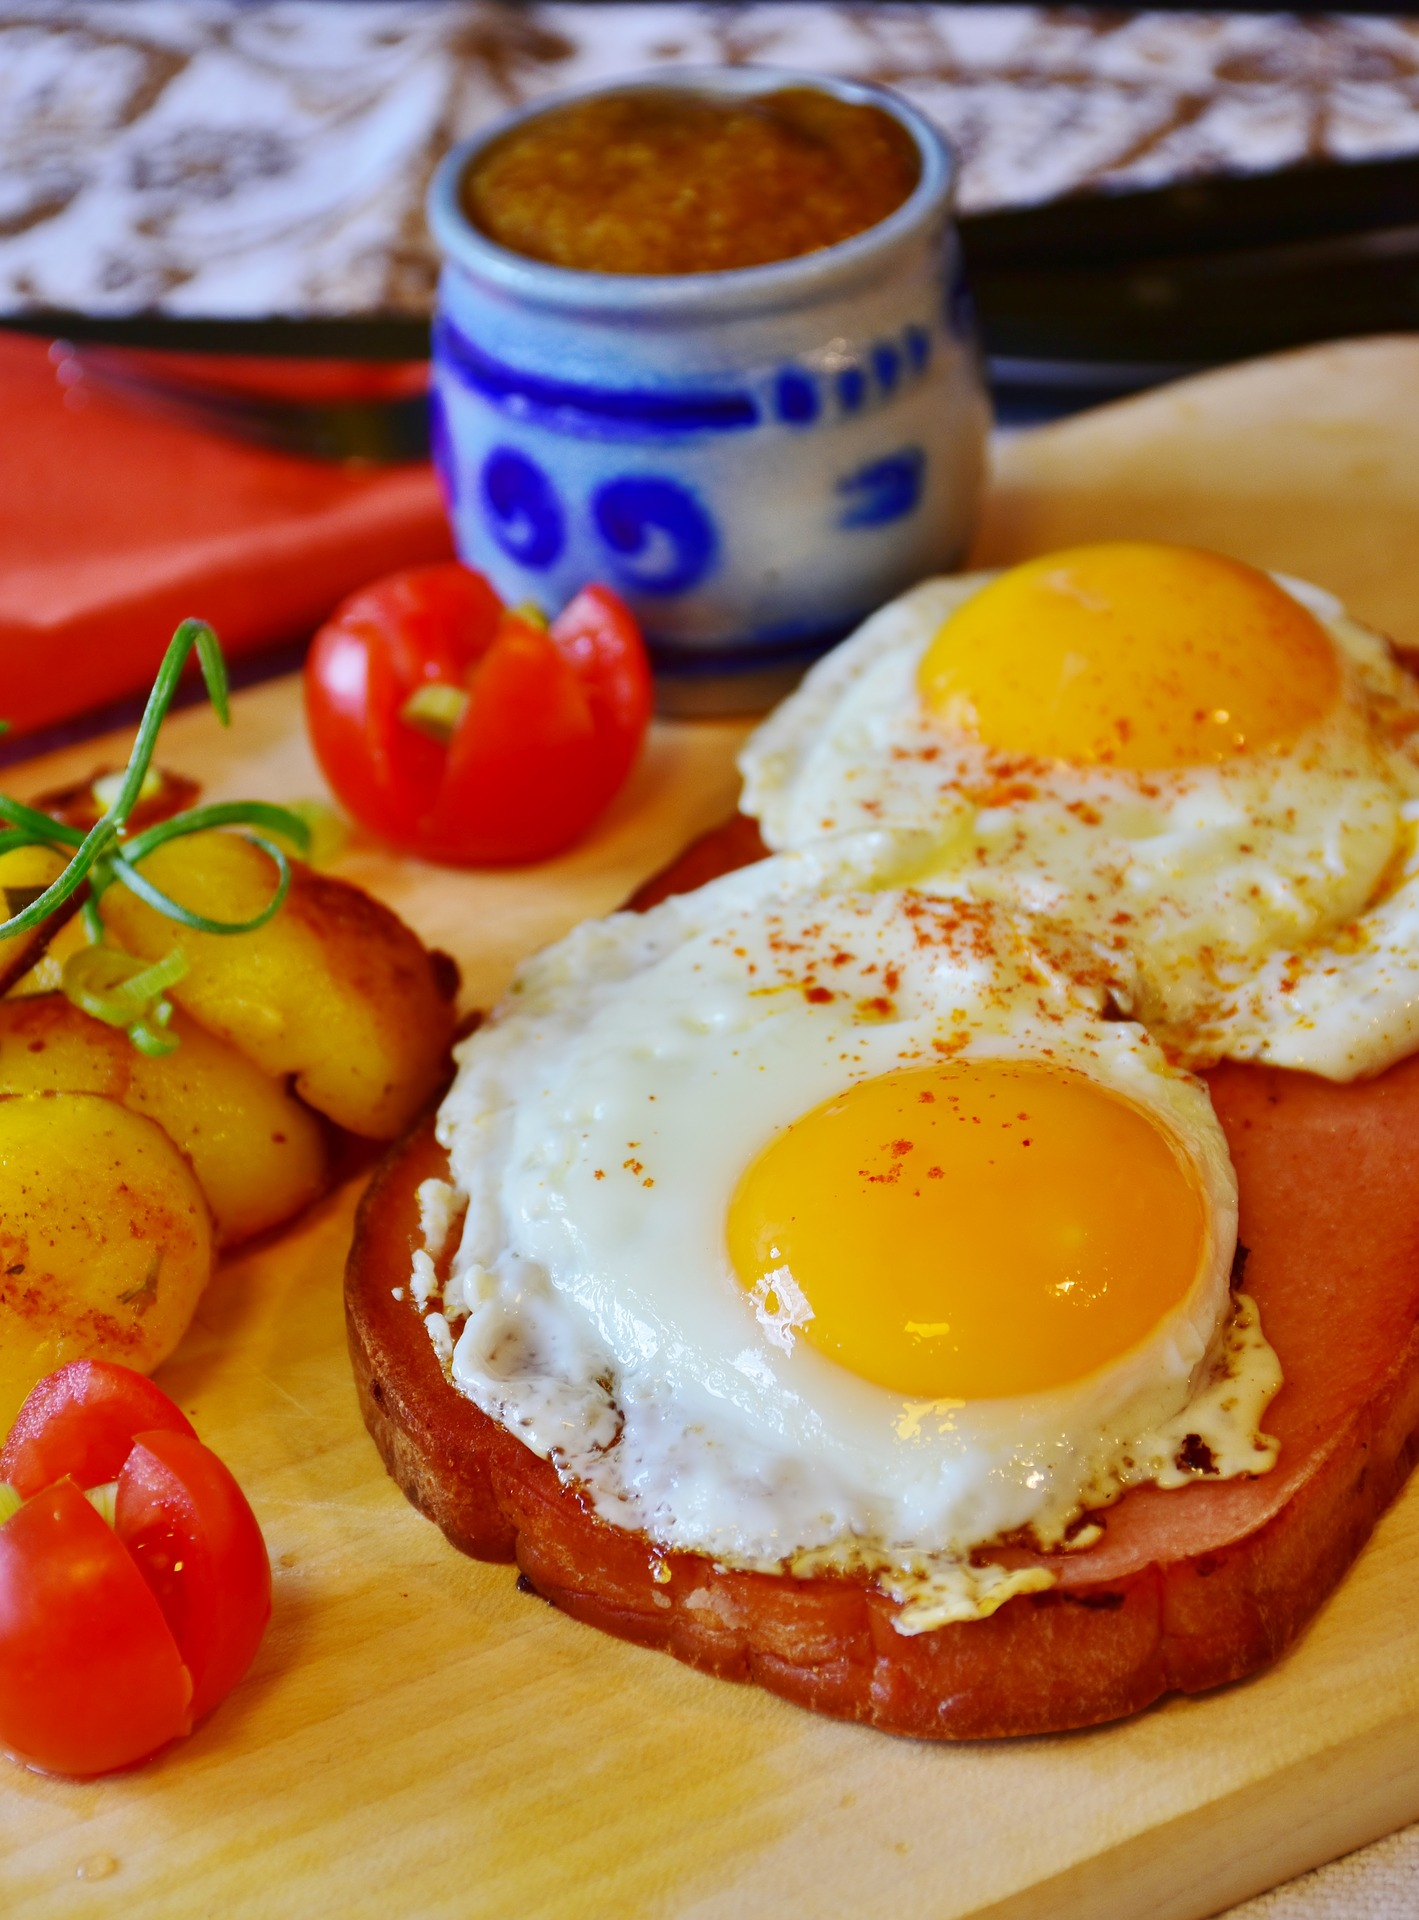 Fried eggs by RitaE from Pixabay